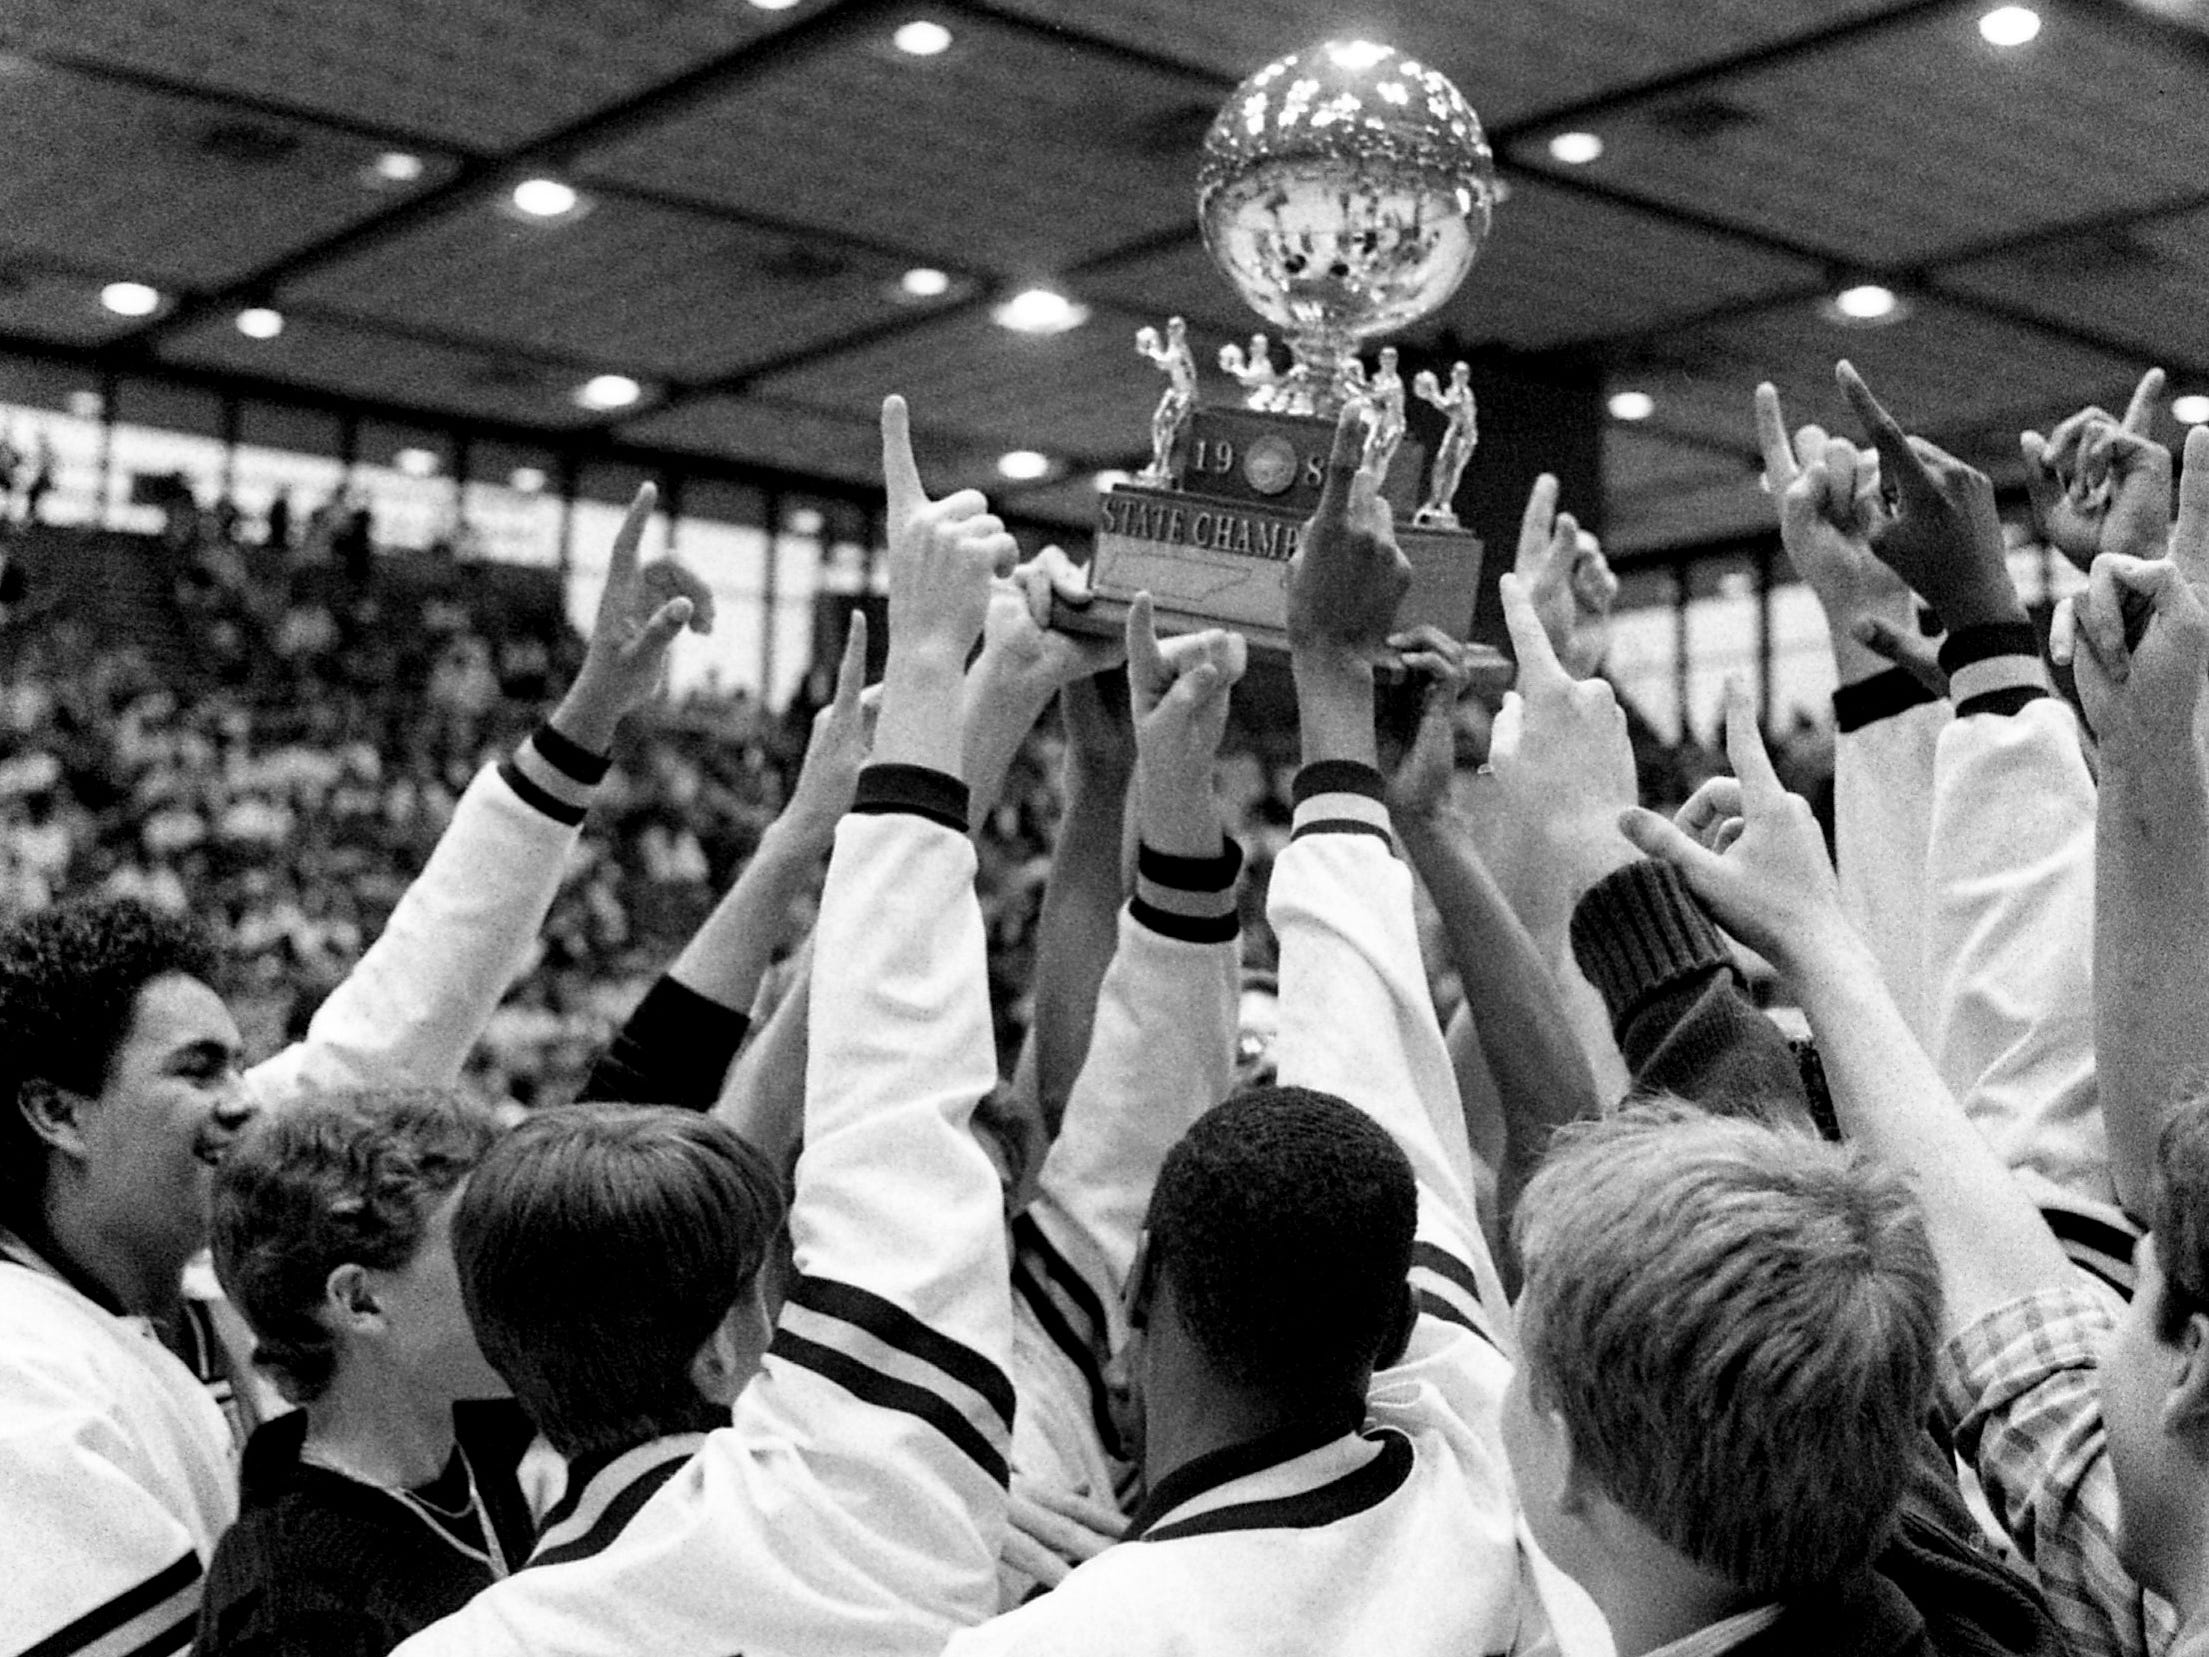 East Robertson High players celebrate after picking up the gold ball trophy for winning their unprecedented third straight Class A title at MTSU's Murphy Center in Murfreesboro on March 18, 1989.